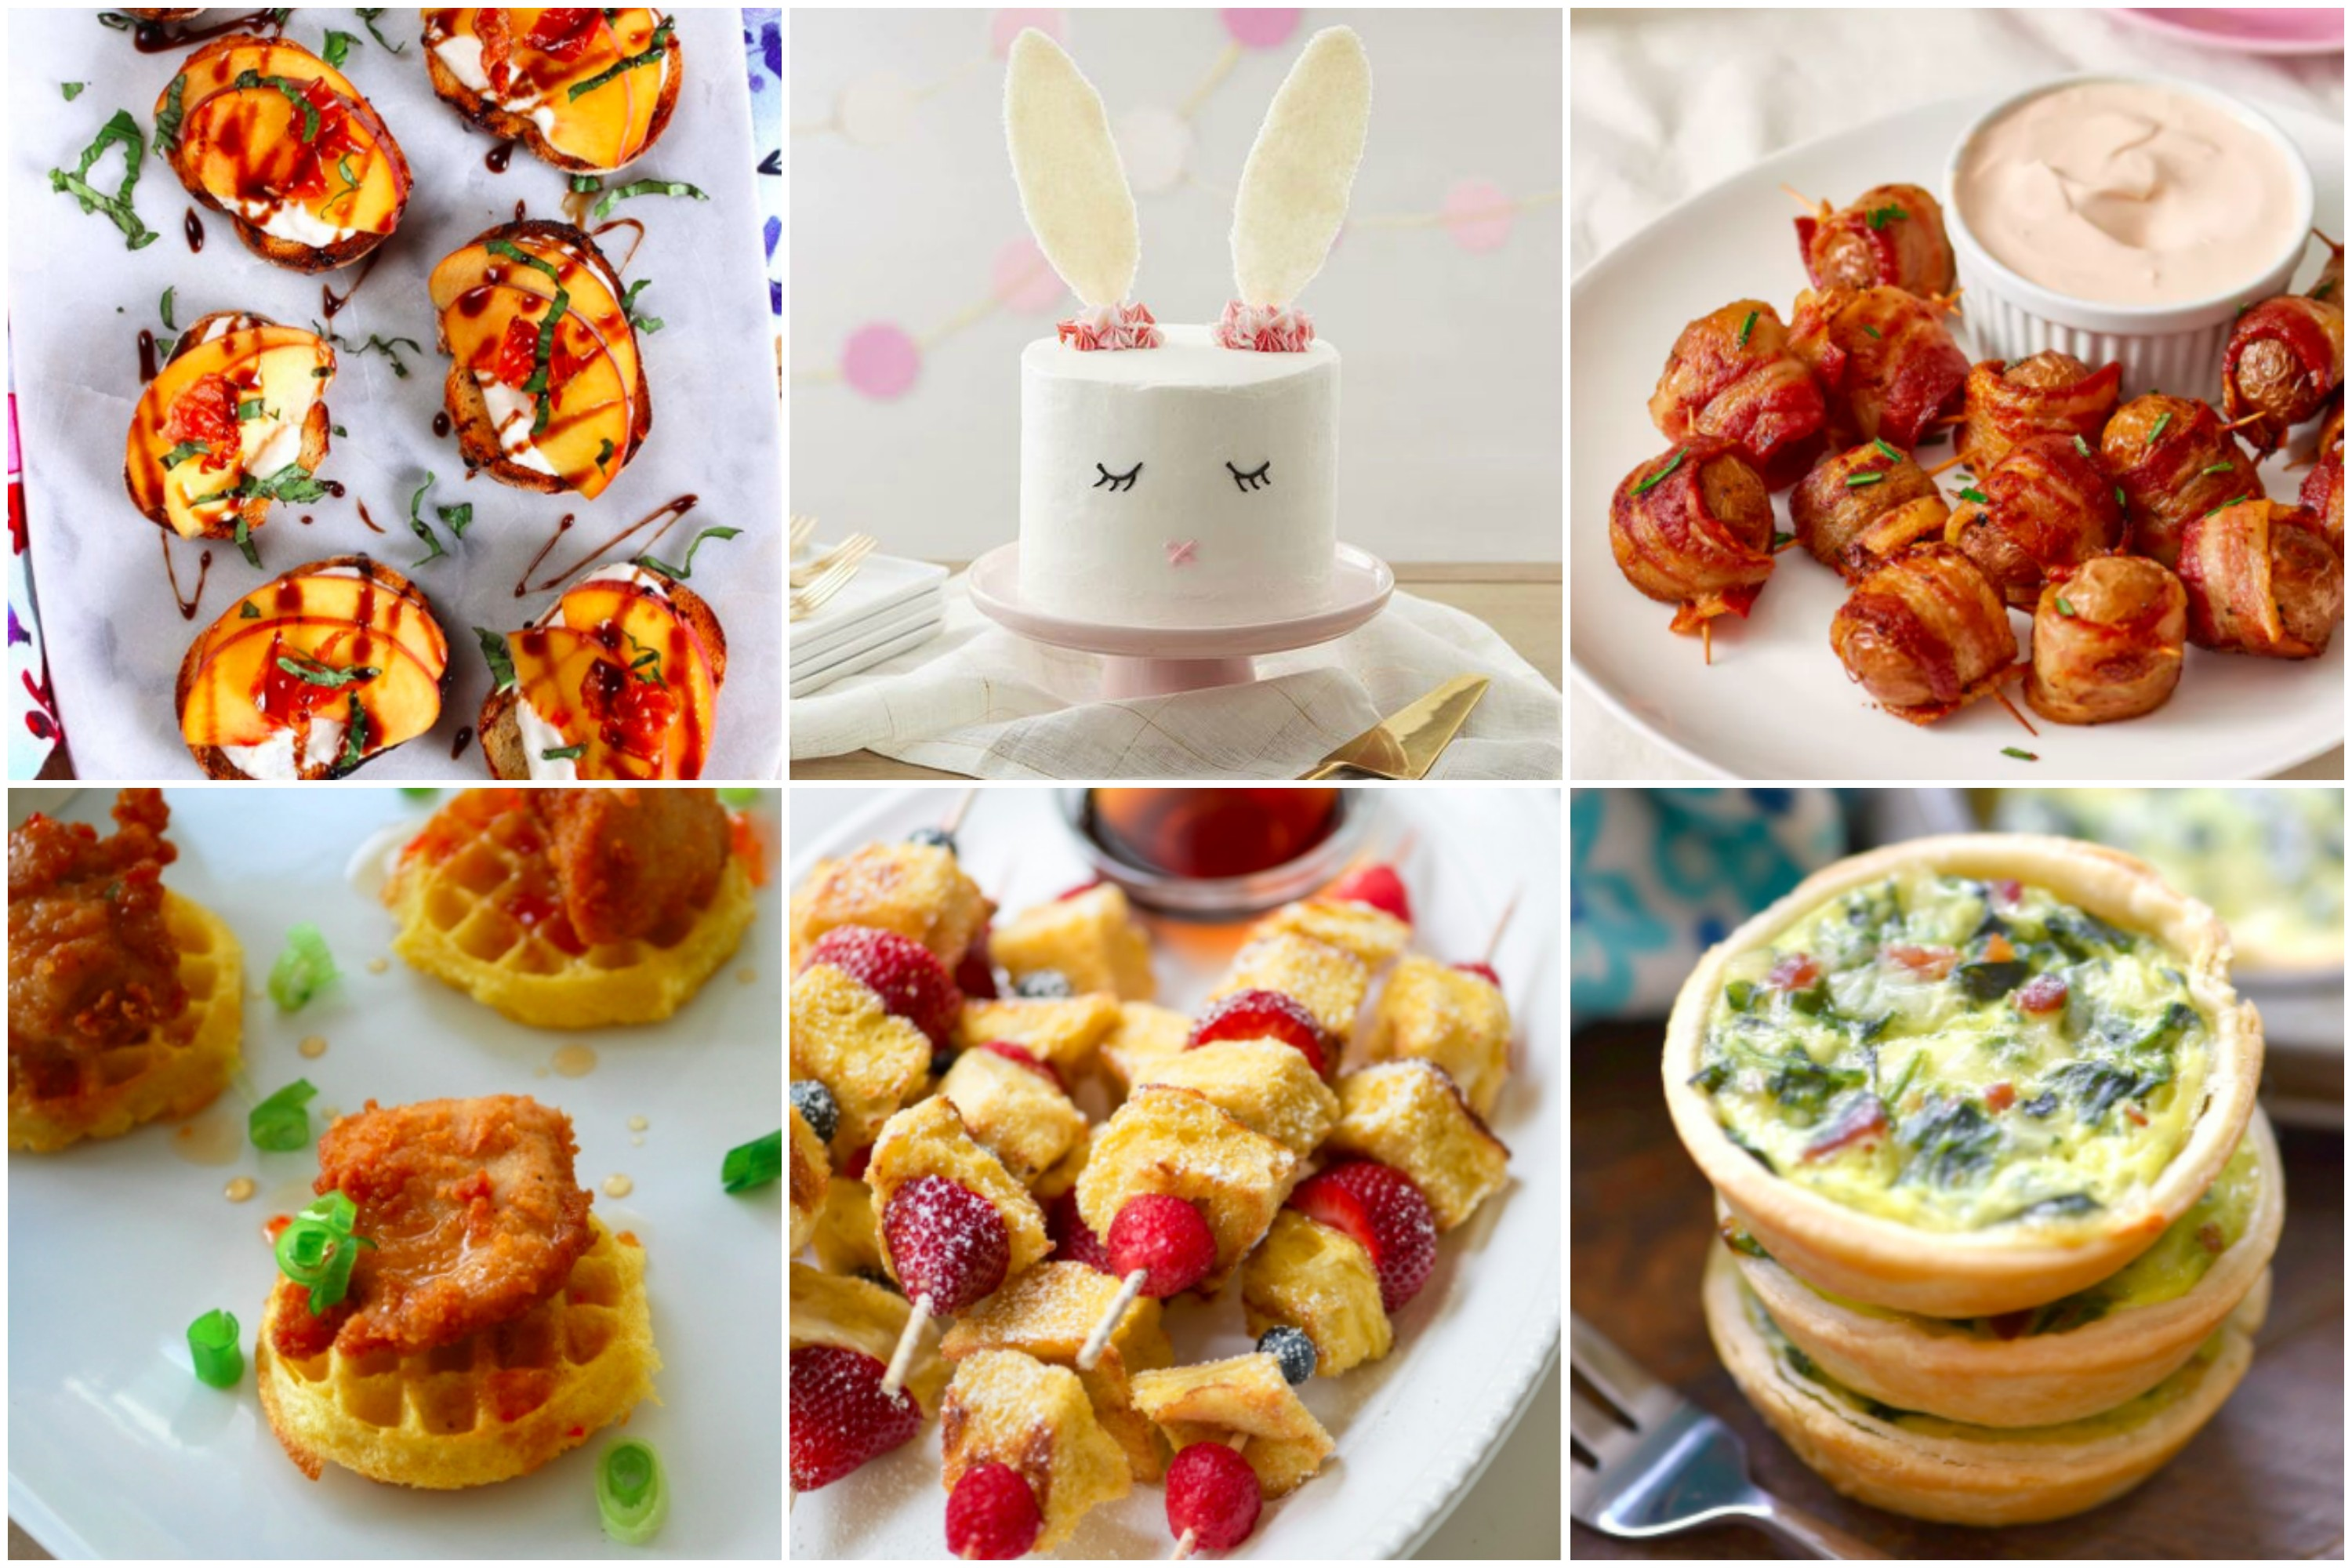 Brunch themed appetizers for a diy baby shower. Baby shower menu ideas with recipes and instructions!